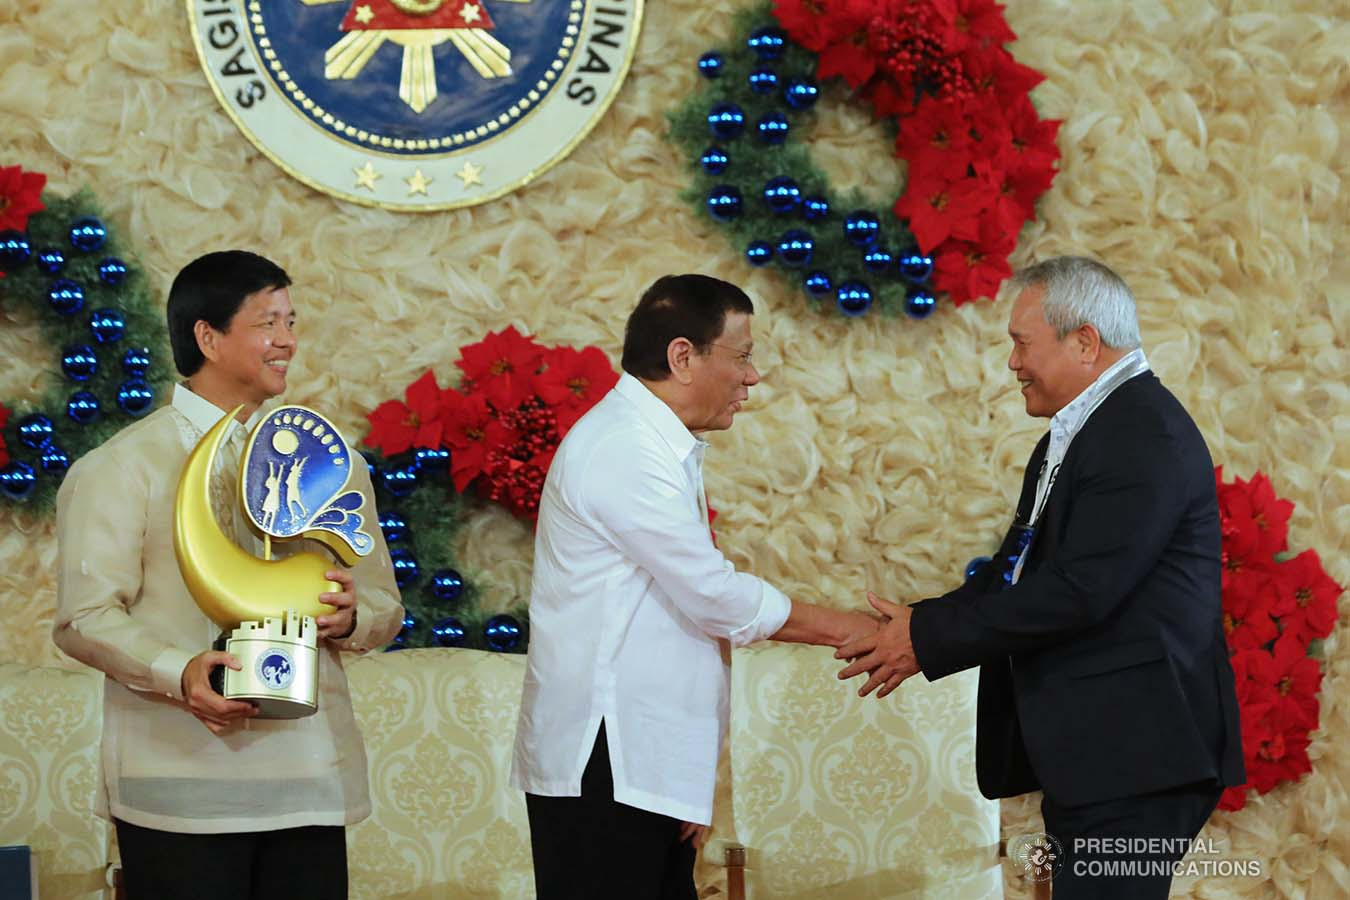 President Rodrigo Roa Duterte congratulates one of the awardees of the 2018 Presidential Award for Child-Friendly Municipalities and Cities (PACFMC) during the awarding ceremony at the Malacañan Palace on November 28, 2019. Assisting the President is Social Welfare and Development Secretary Rolando Bautista. VALERIE ESCALERA/PRESIDENTIAL PHOTO